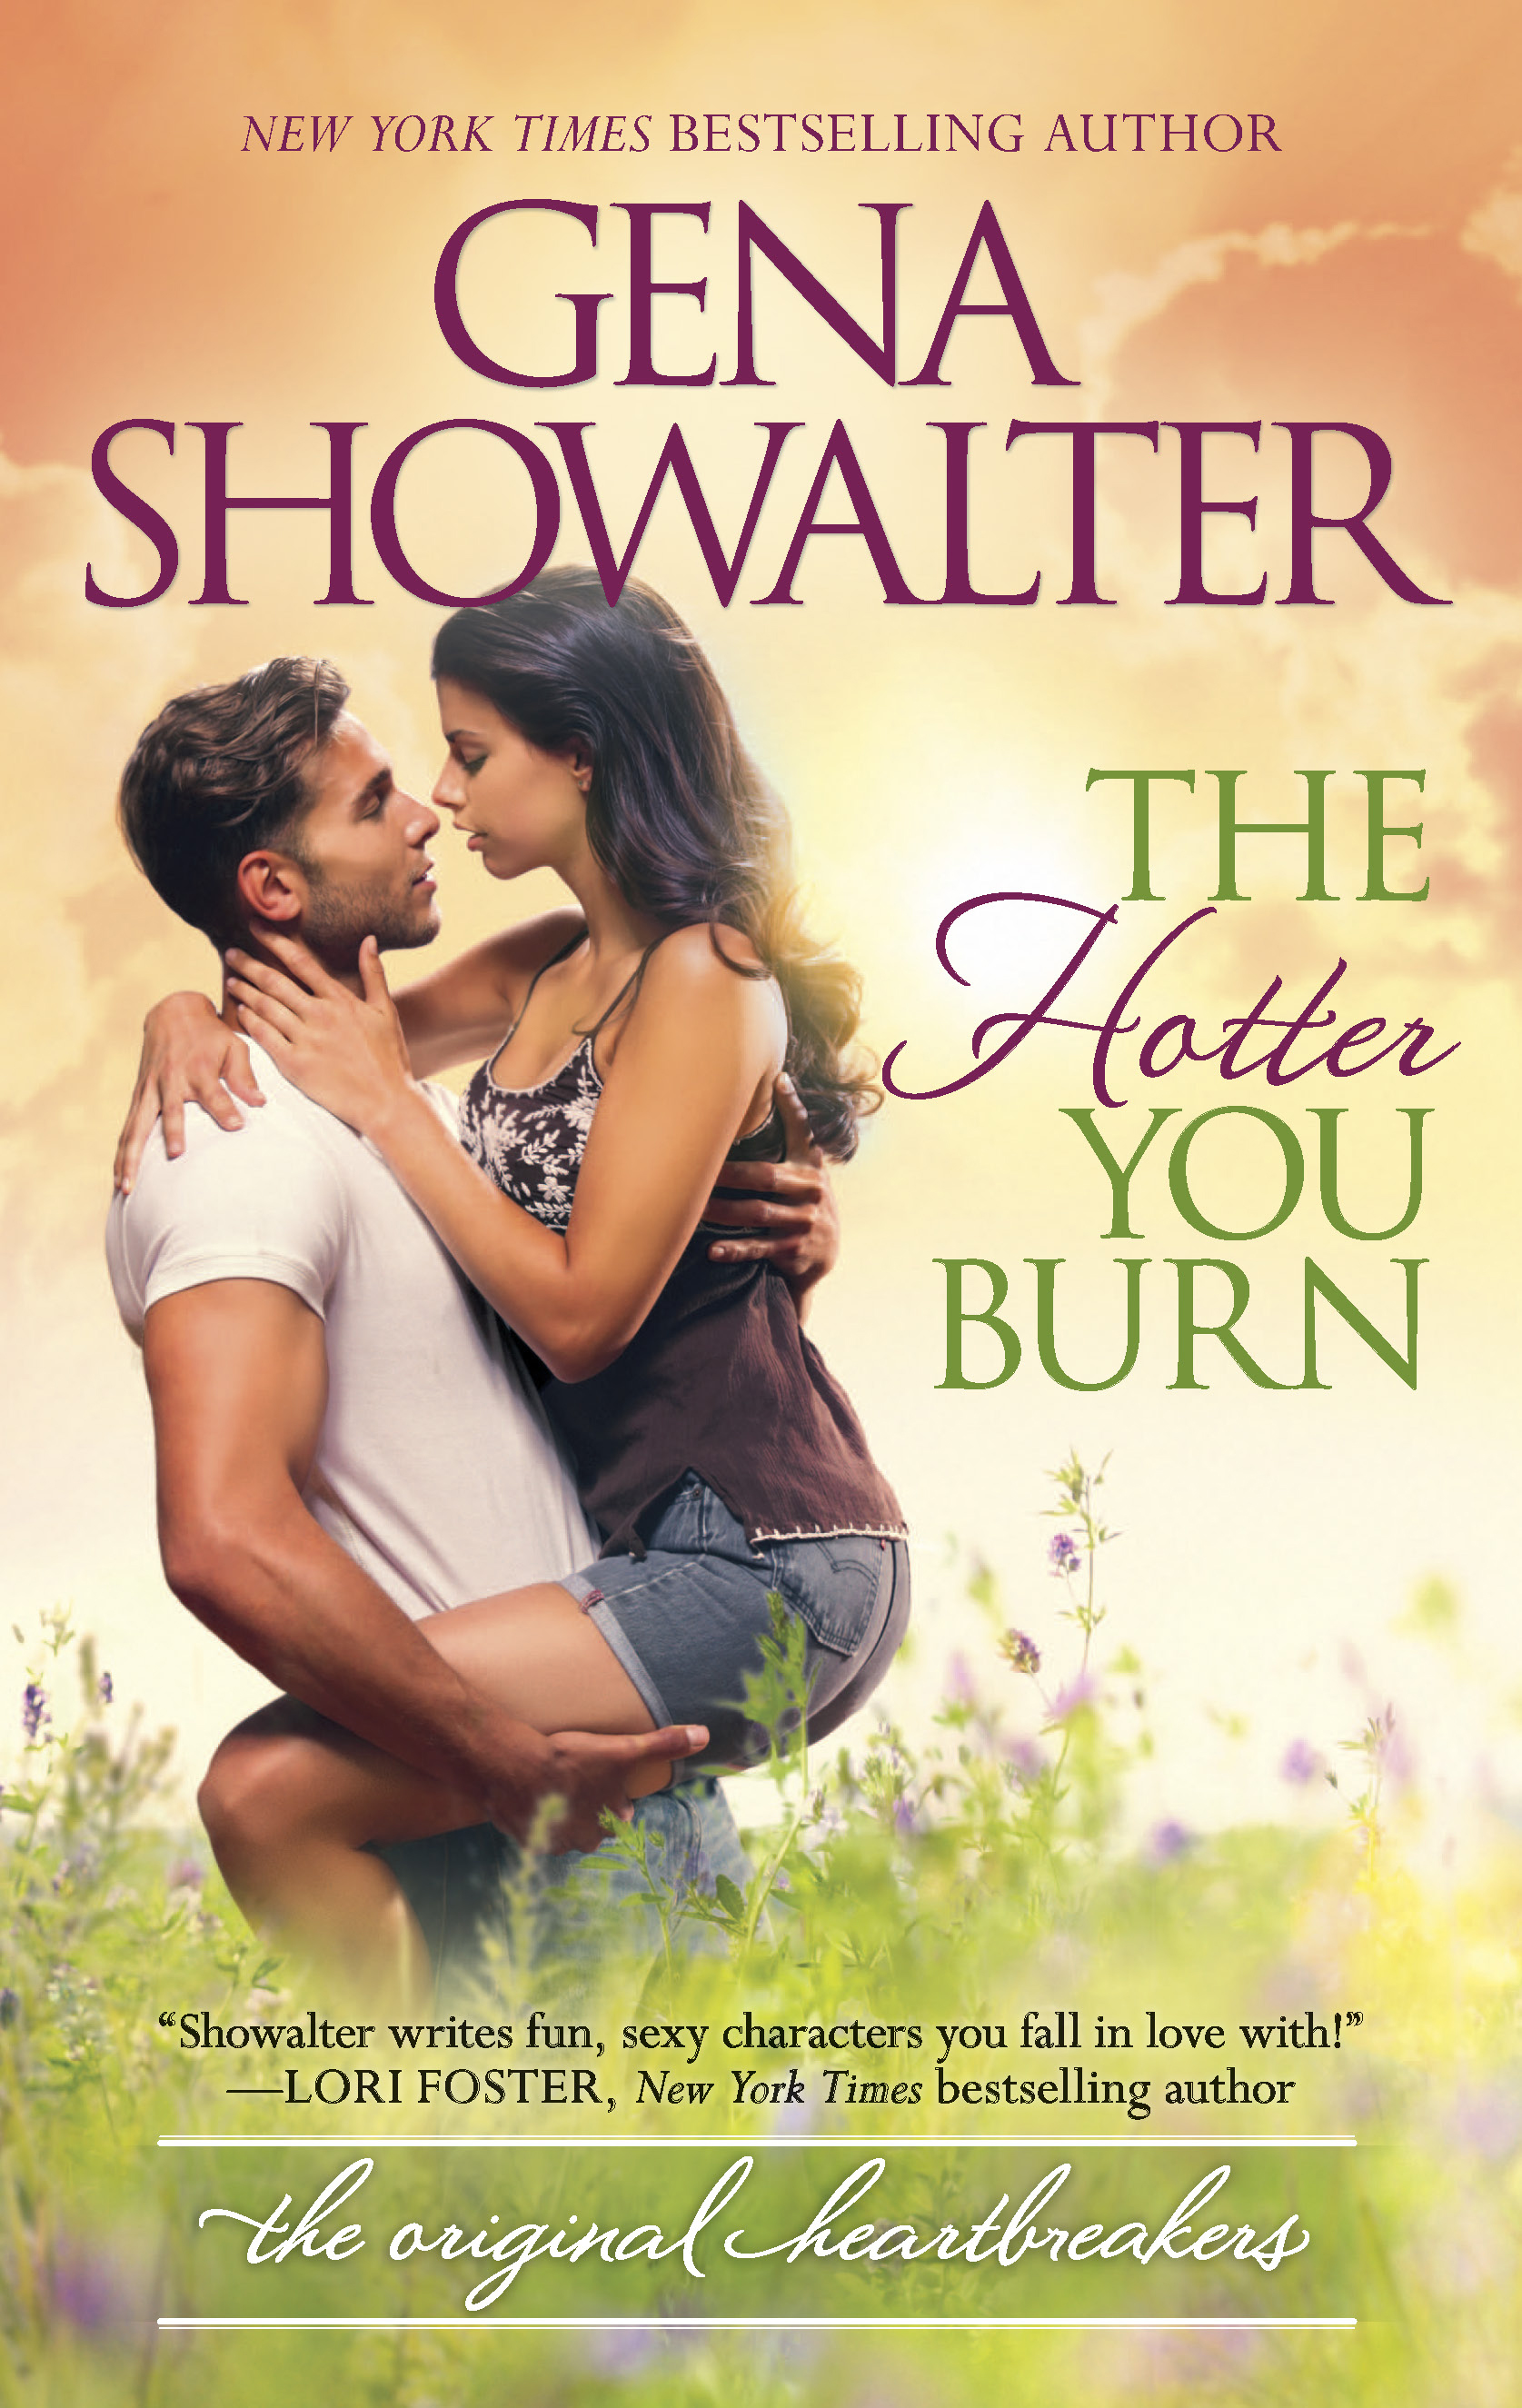 The hotter you burn cover image